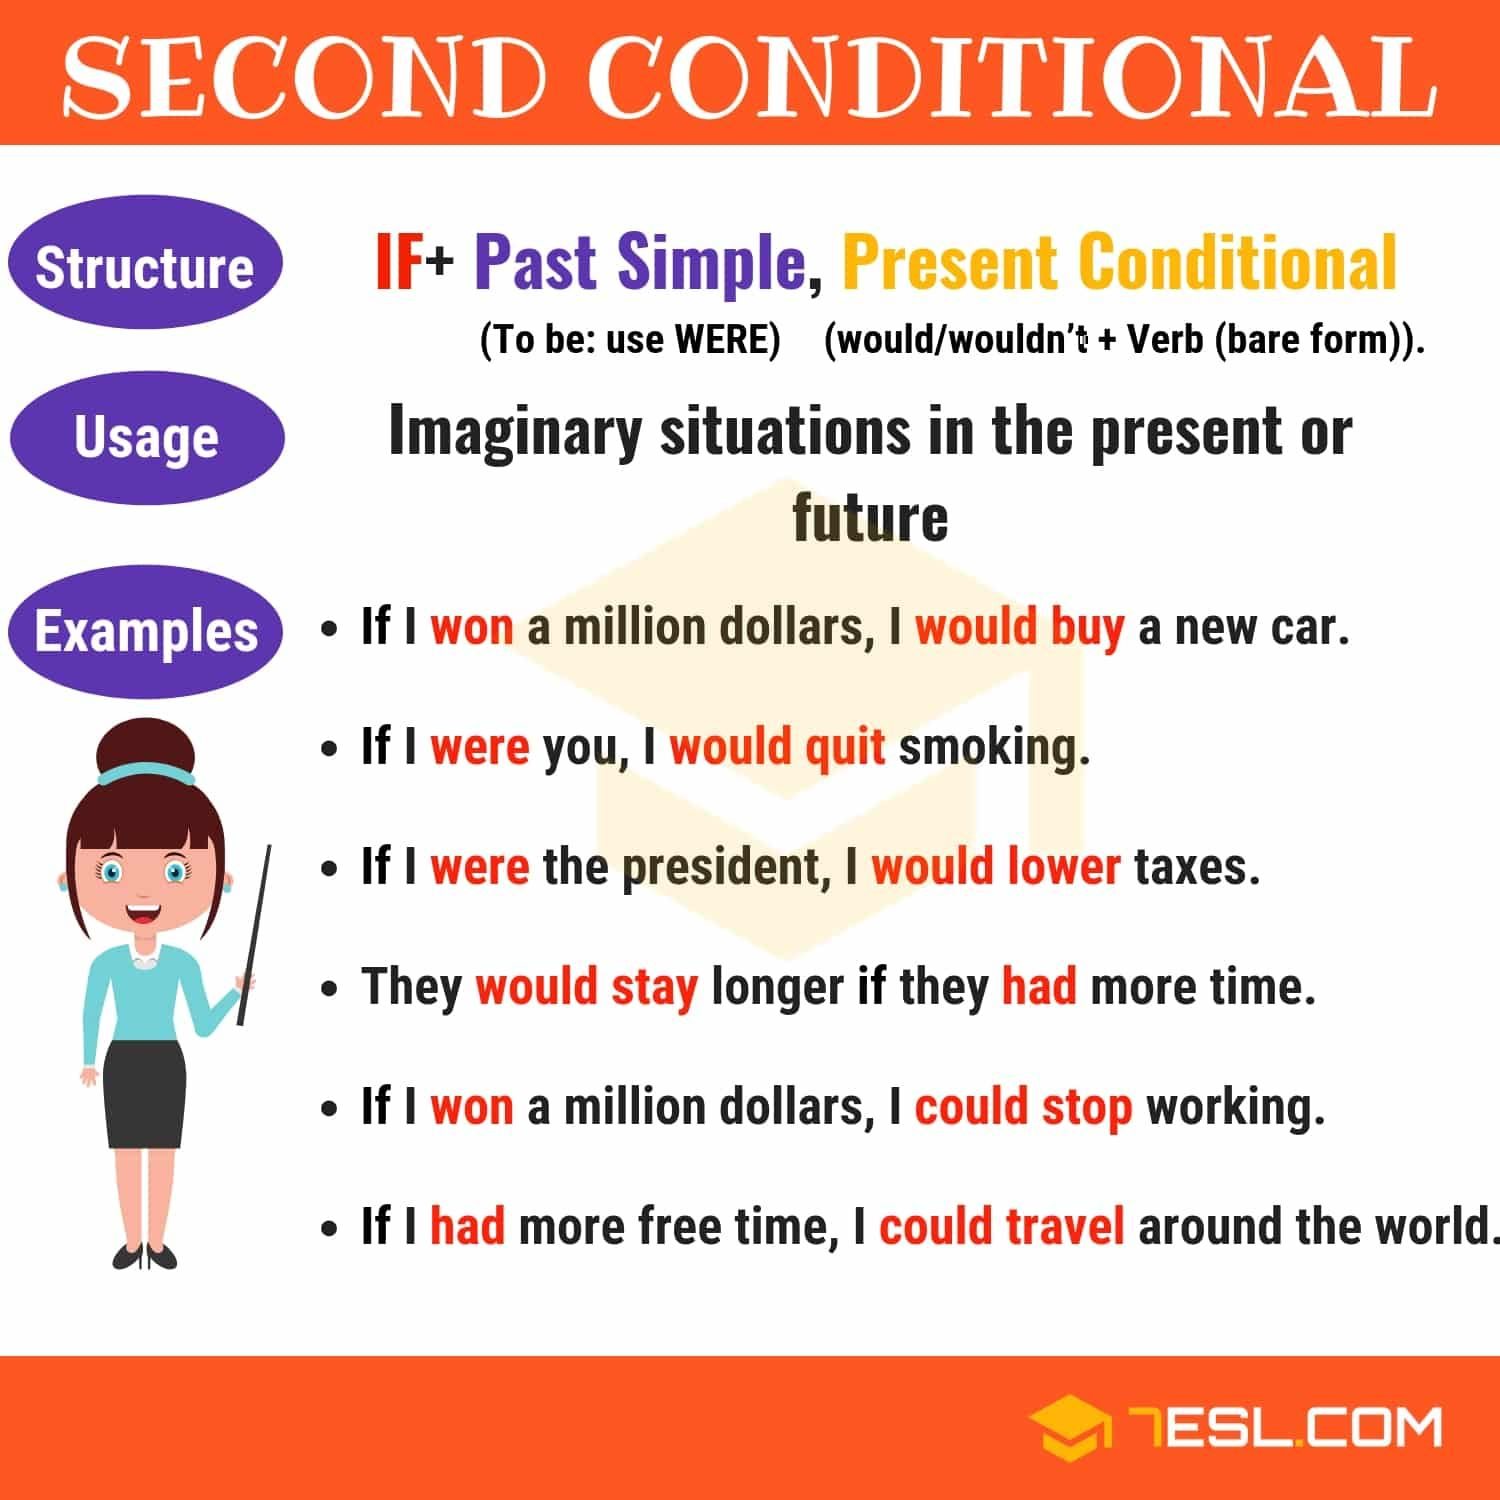 Second Conditional Conditional Sentences Type 2 Usage